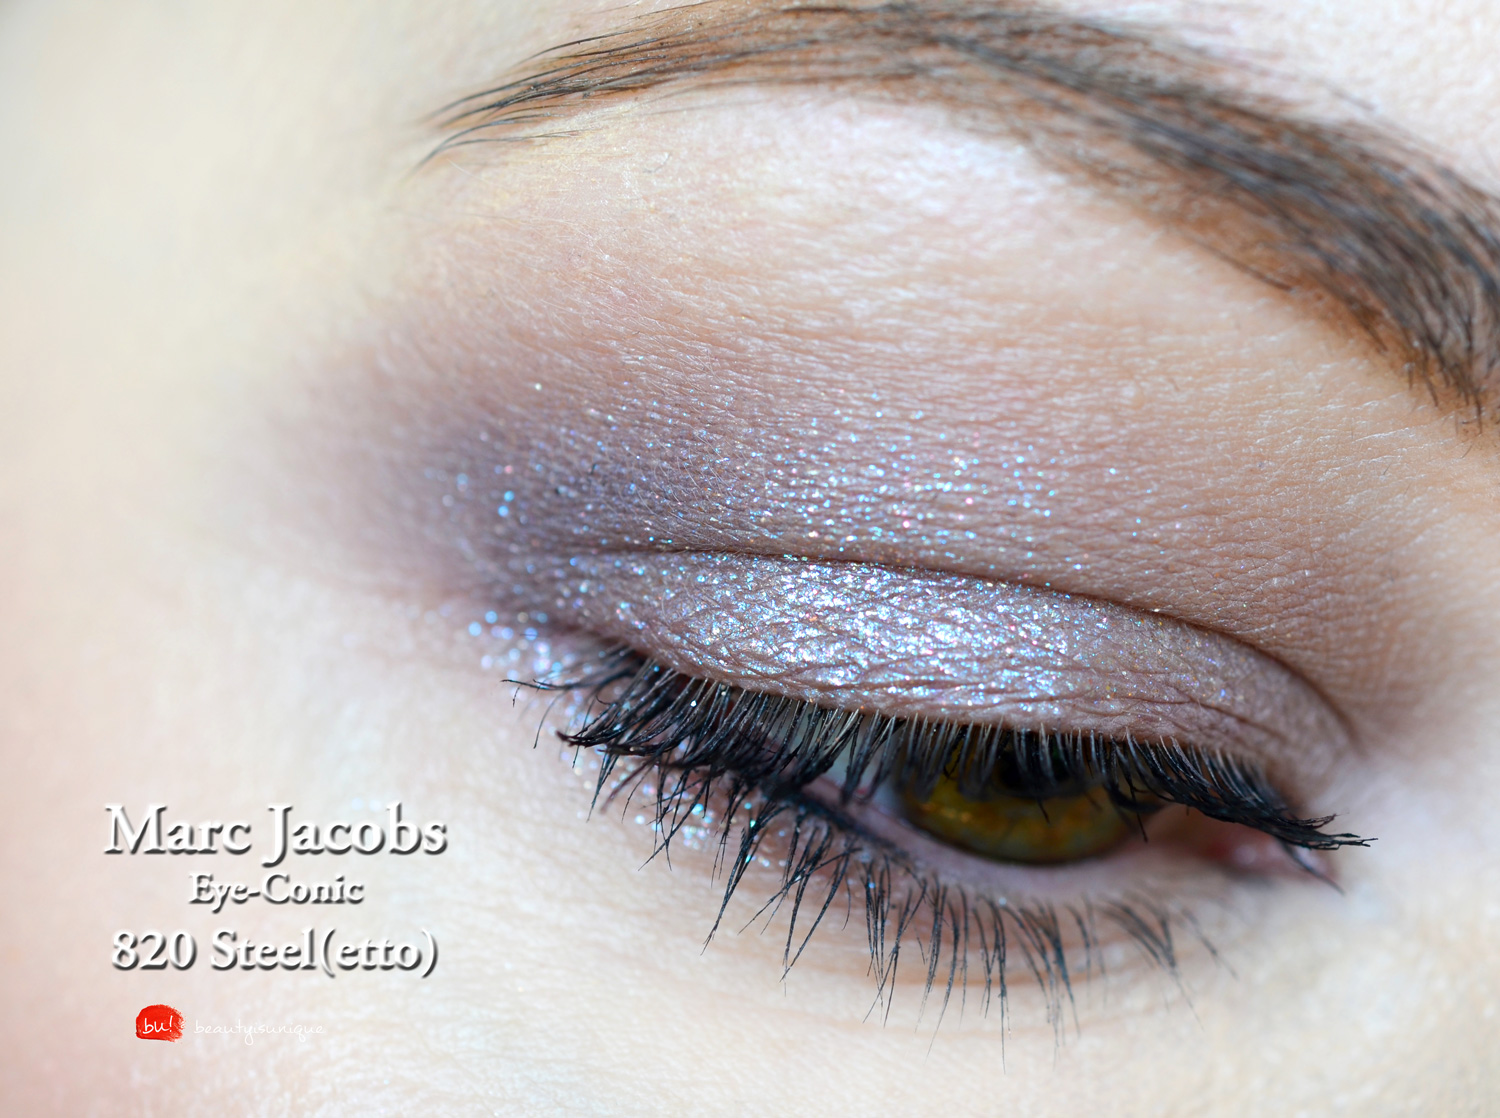 marc-jacobs-steeletto-820-eye-conic-swatches